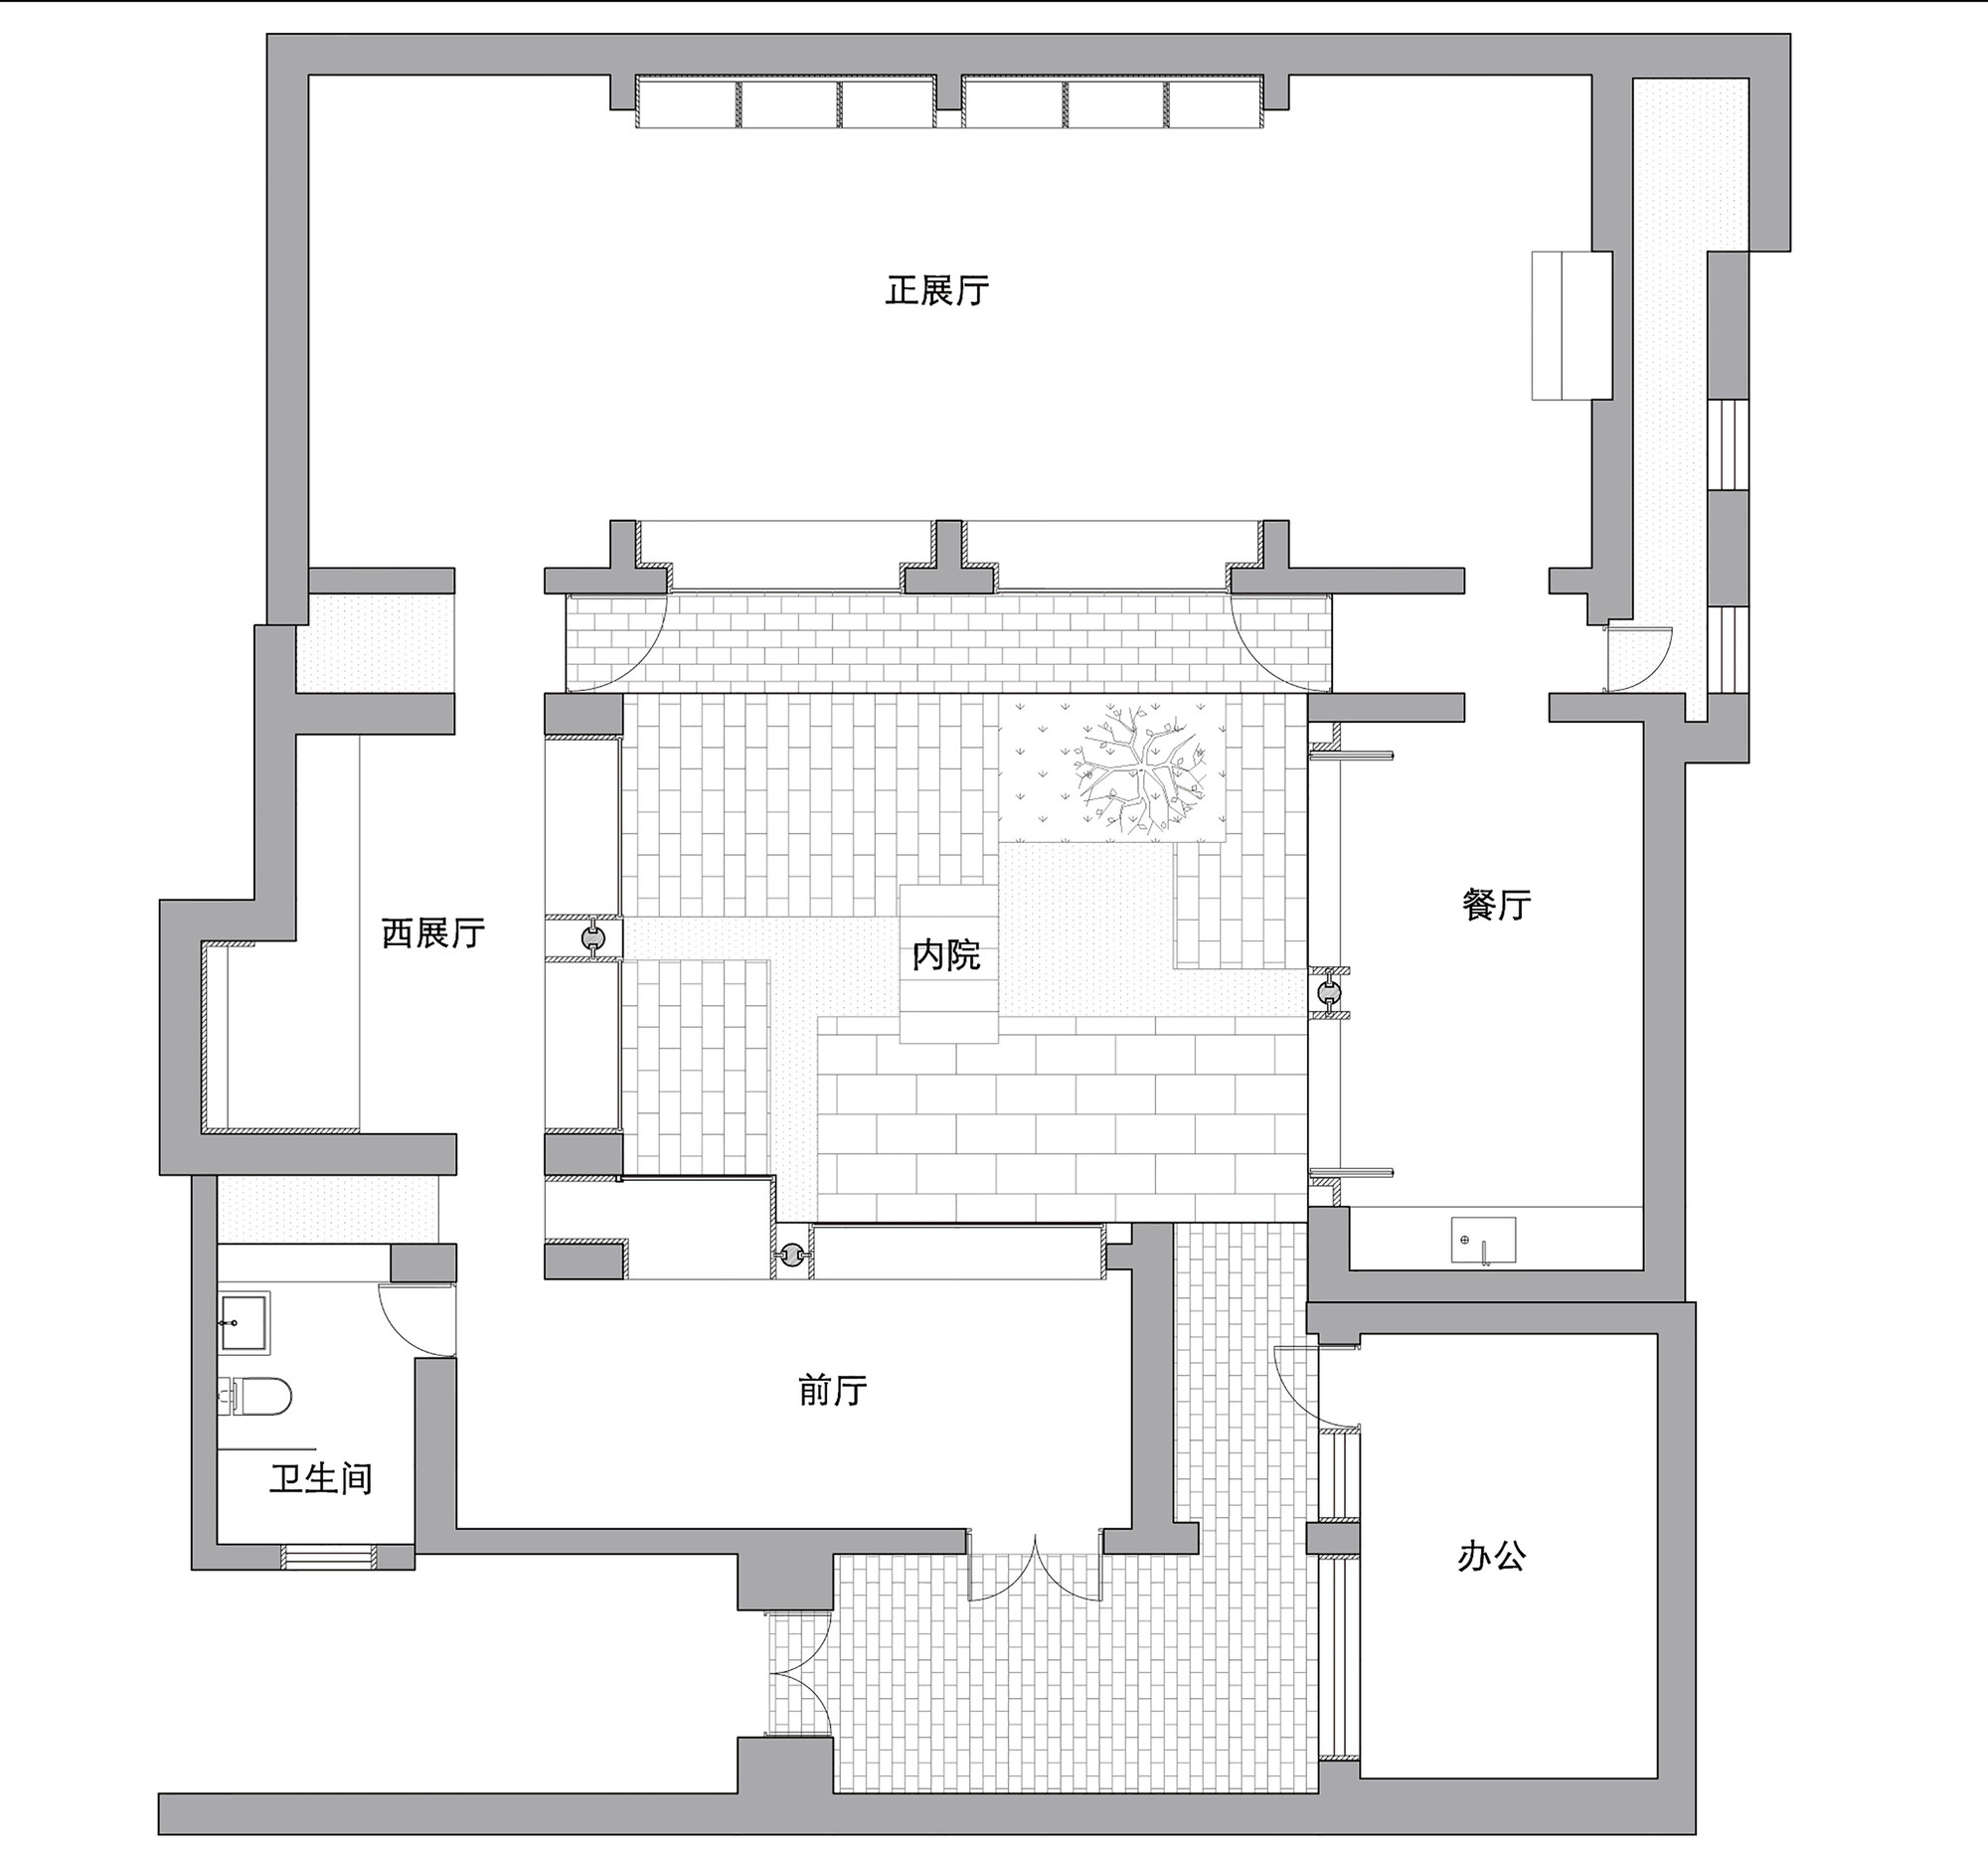 Floor plan synonym list of synonyms and antonyms of the for Floor synonym